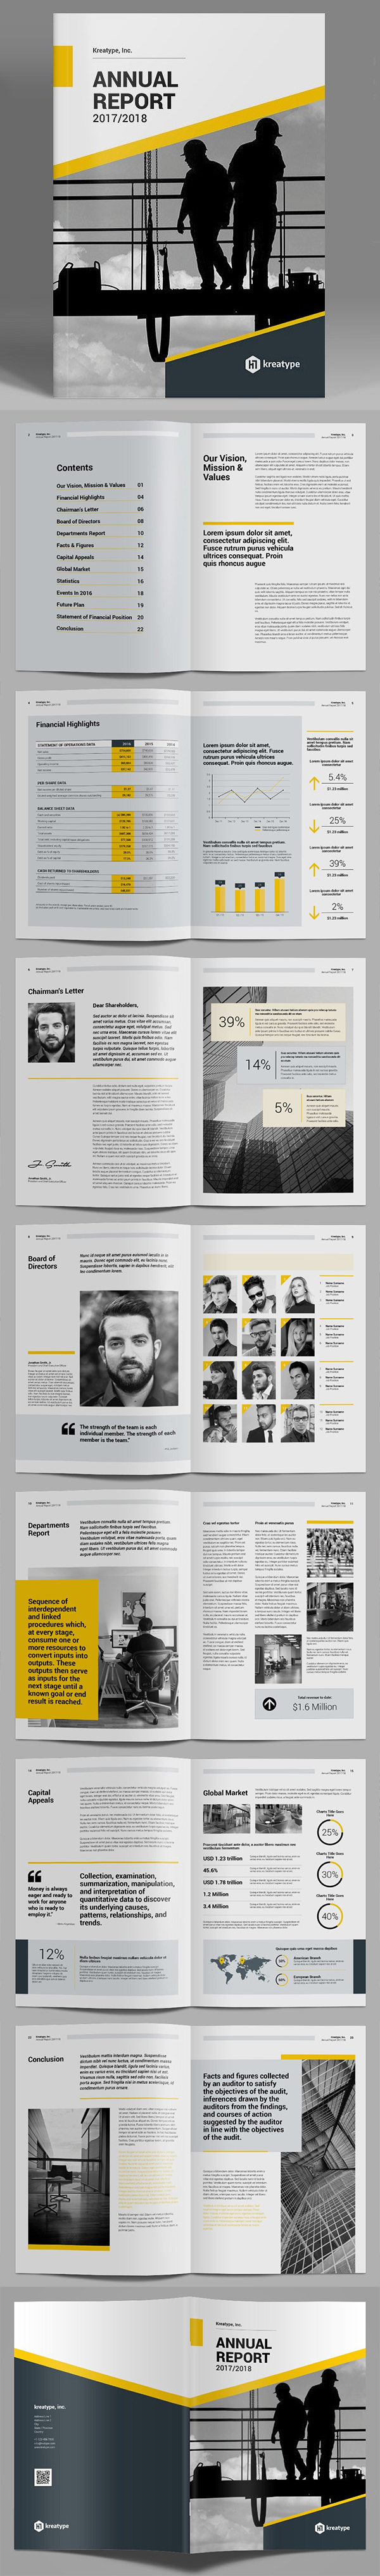 Kreatype Annual Report Template